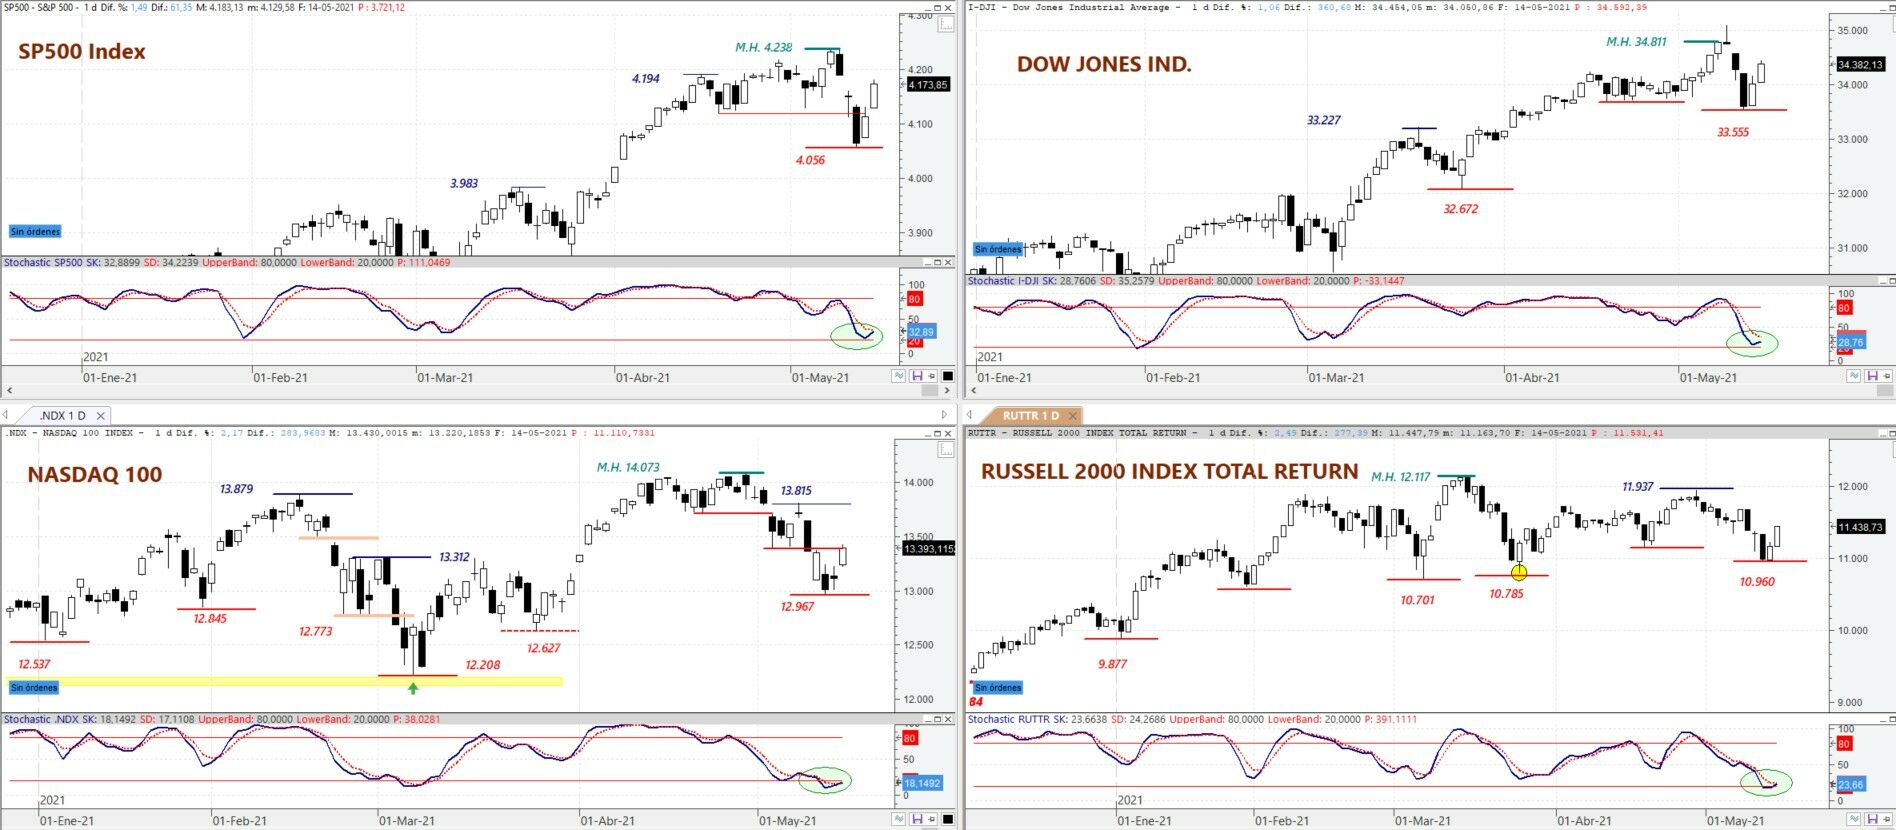 S&P 500, DOW JONES Ind, NASDAQ 100 and Russell 2000 on daily chart